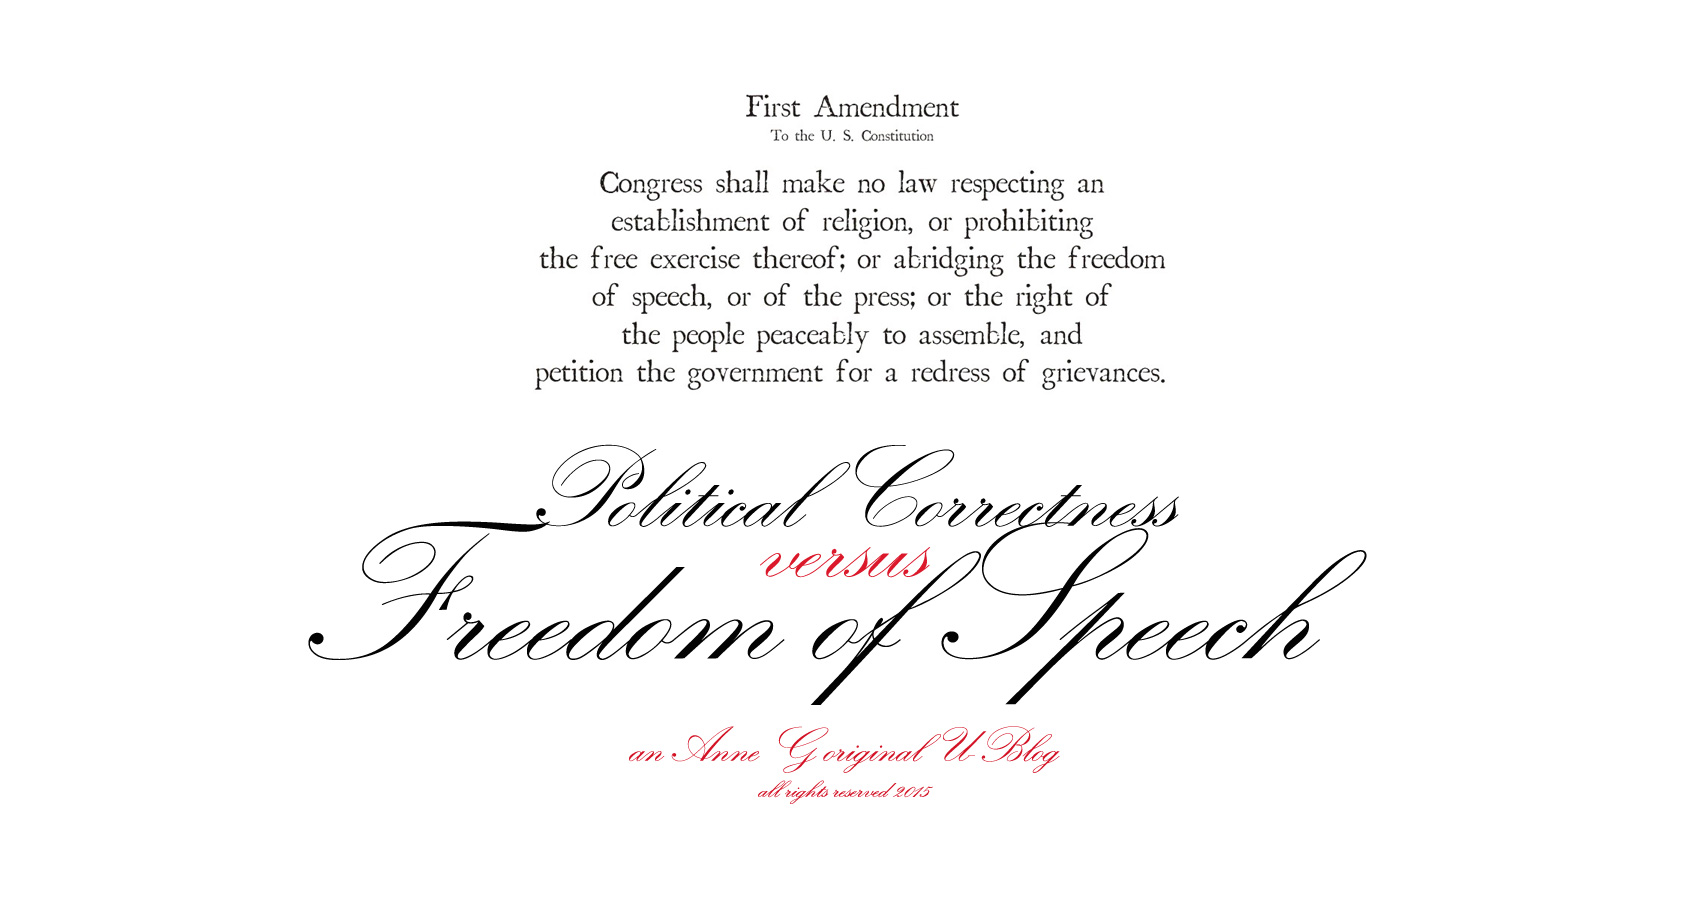 spillwords.com Political Correctness Versus Freedom of Speech An Original Anne G U-Blog